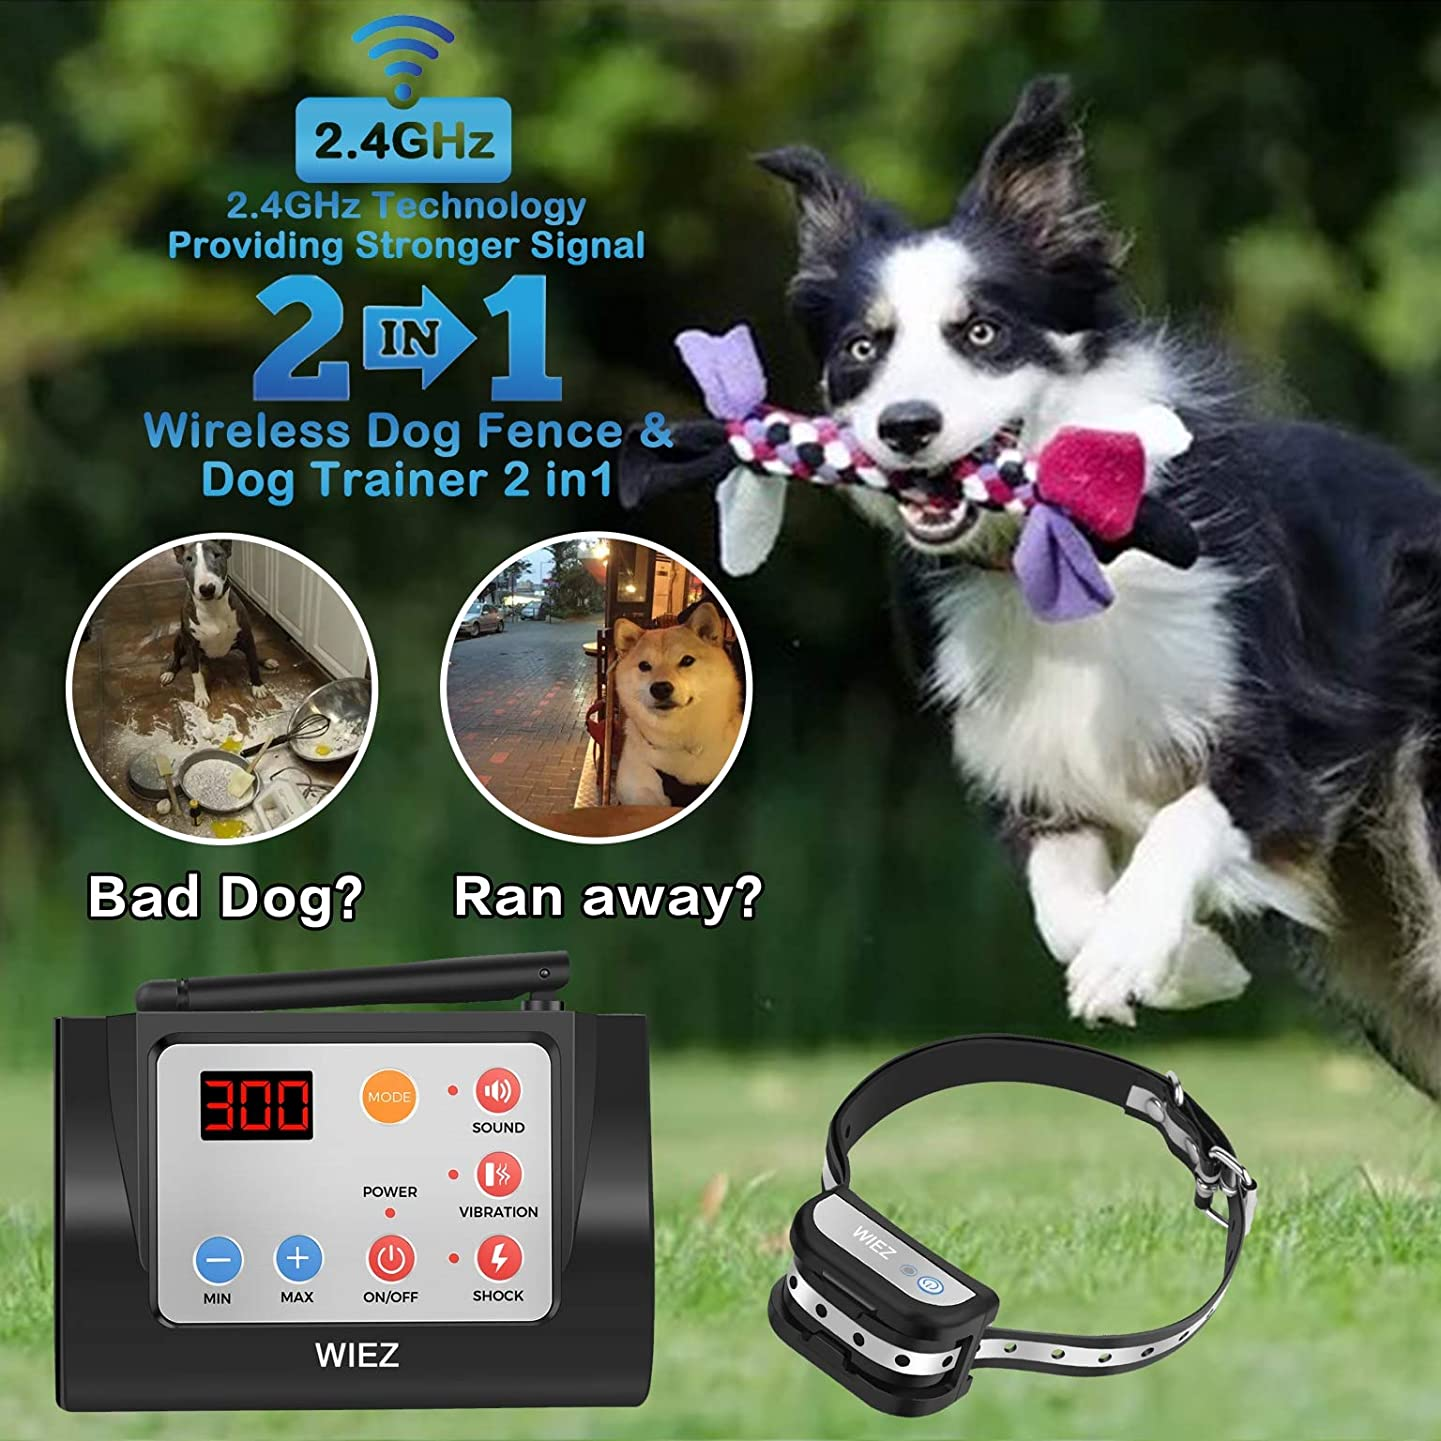 WIEZ Dog Fence Wireless & Training Collar Outdoor 2-in-1, Electirc Invisible Fence for Dogs with Remote Wireless, Adjustable Range Control, Waterproof Reflective Stripe Collar, Harmless for All Dogs